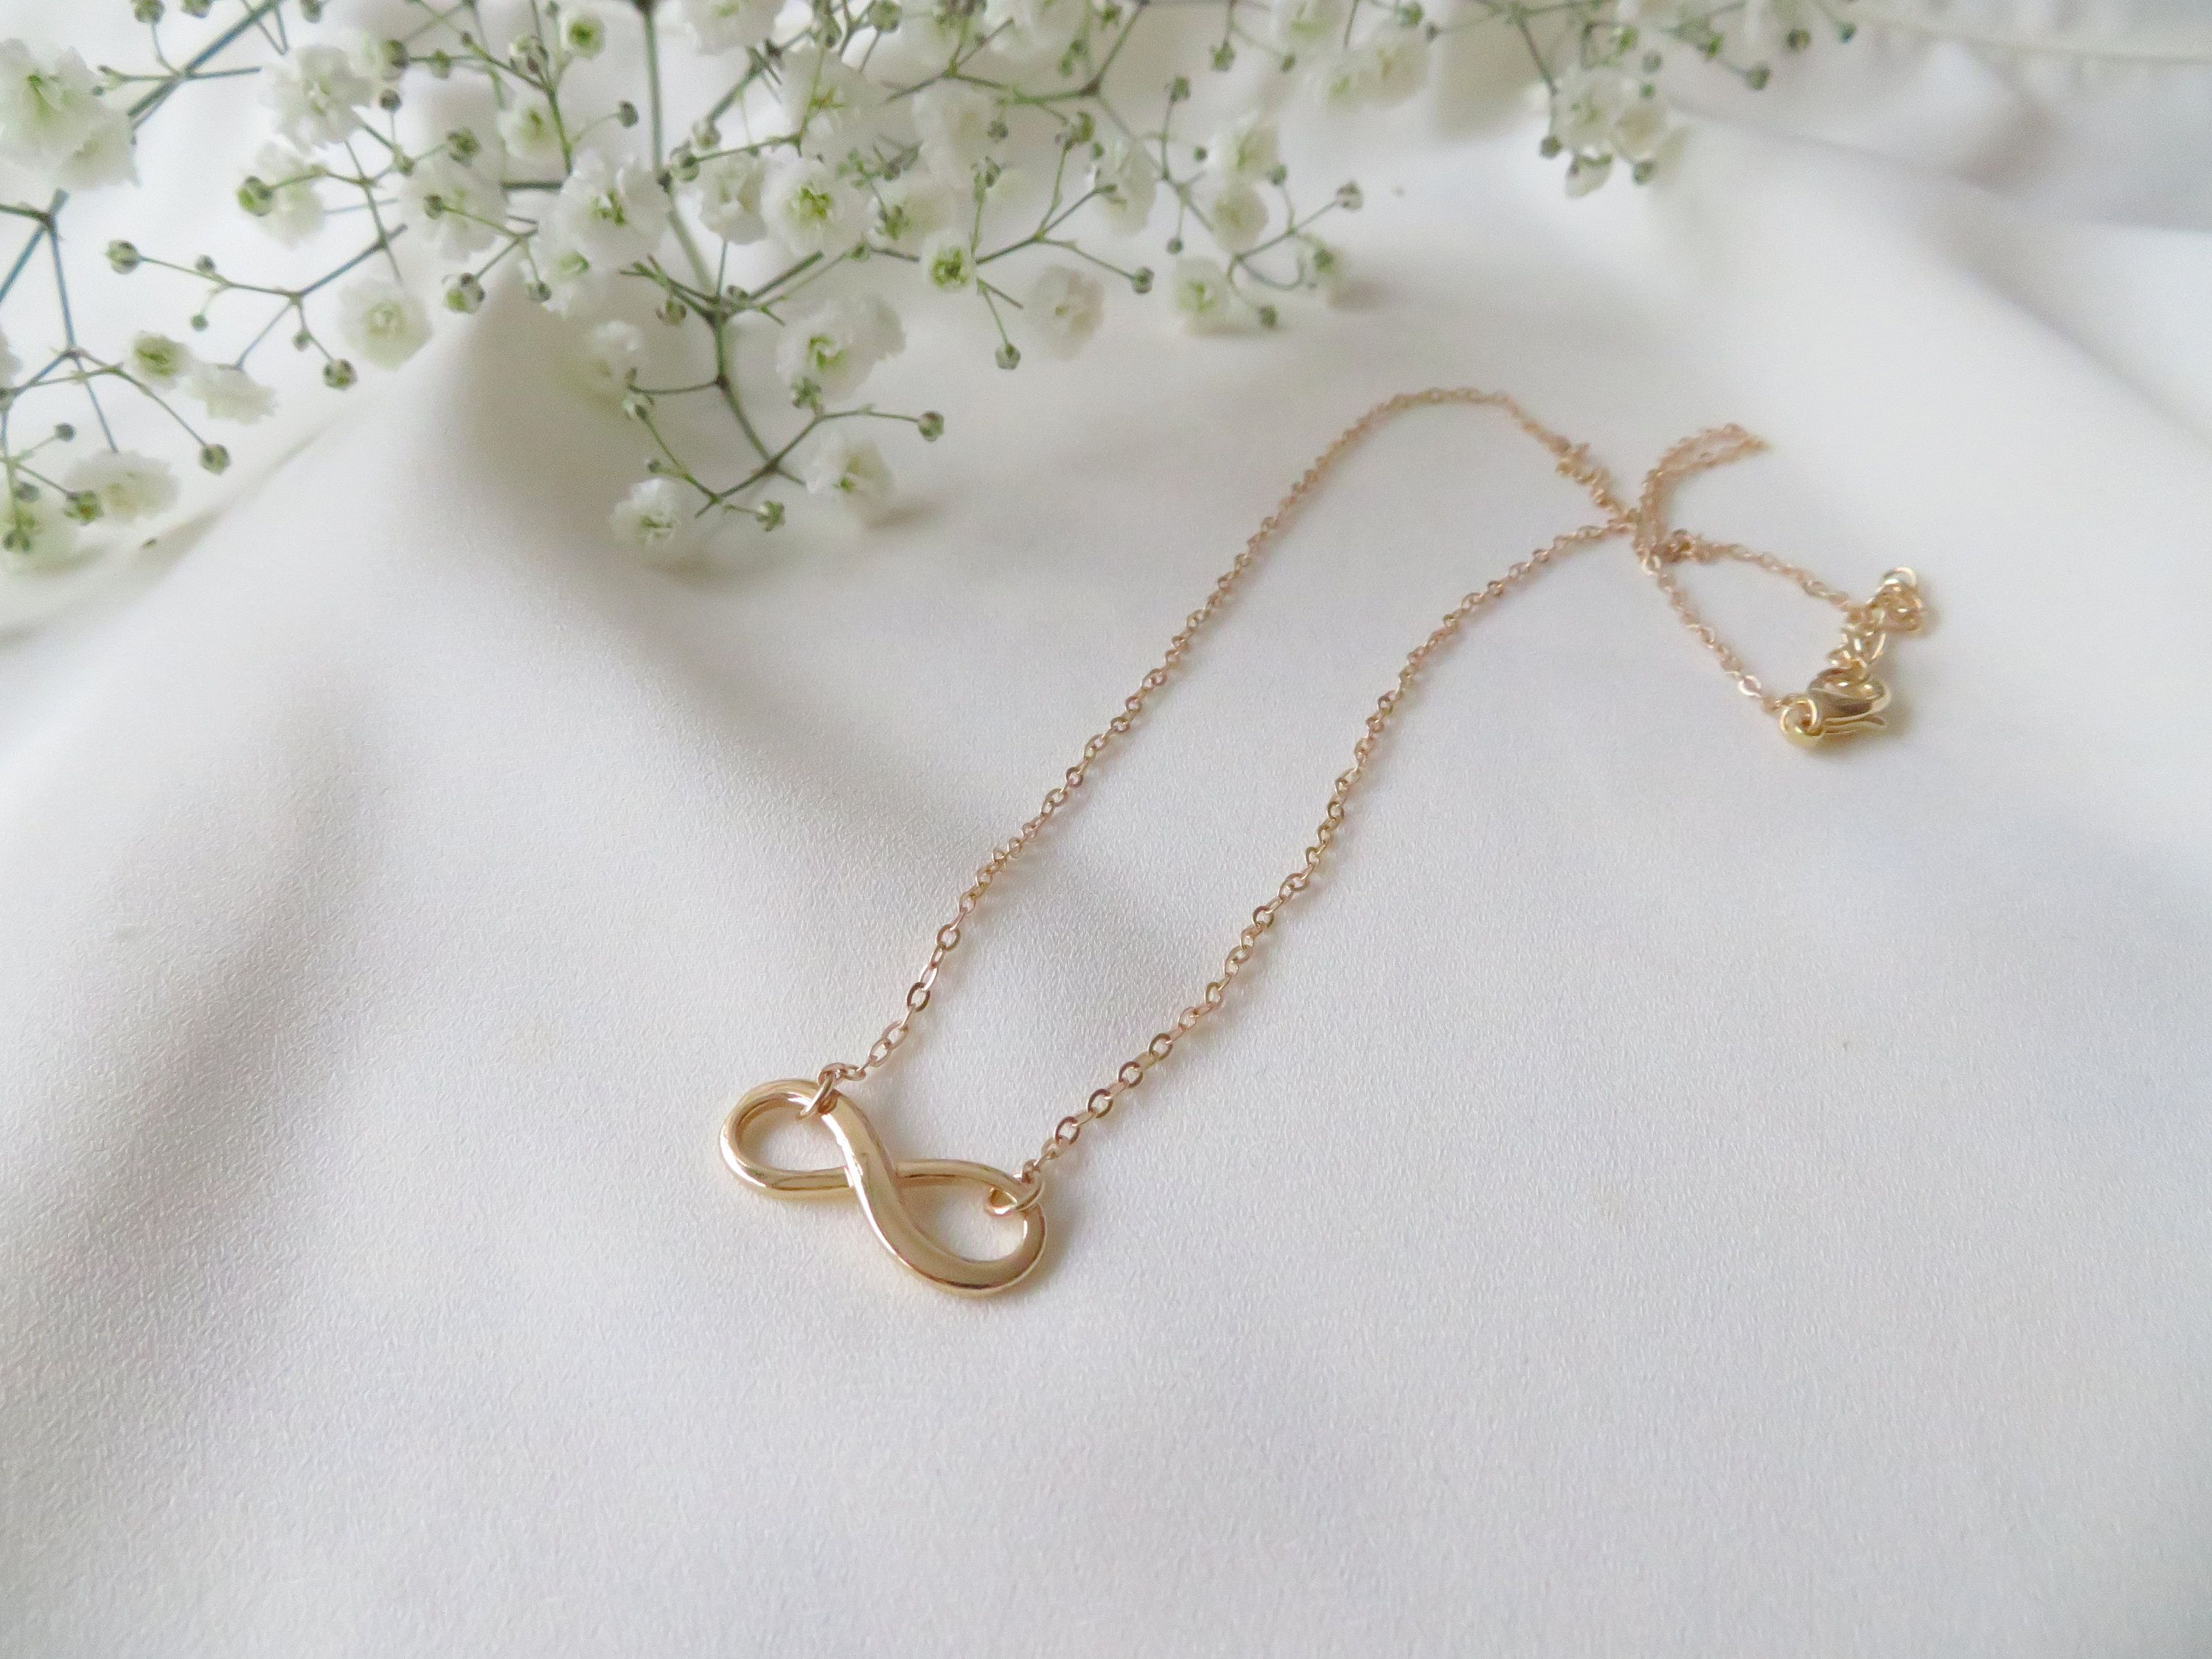 Photo of Infinity gold filled necklace, dainty friendship necklace, minimalist sister necklace, birthday gift for her, fine infinity jewelry